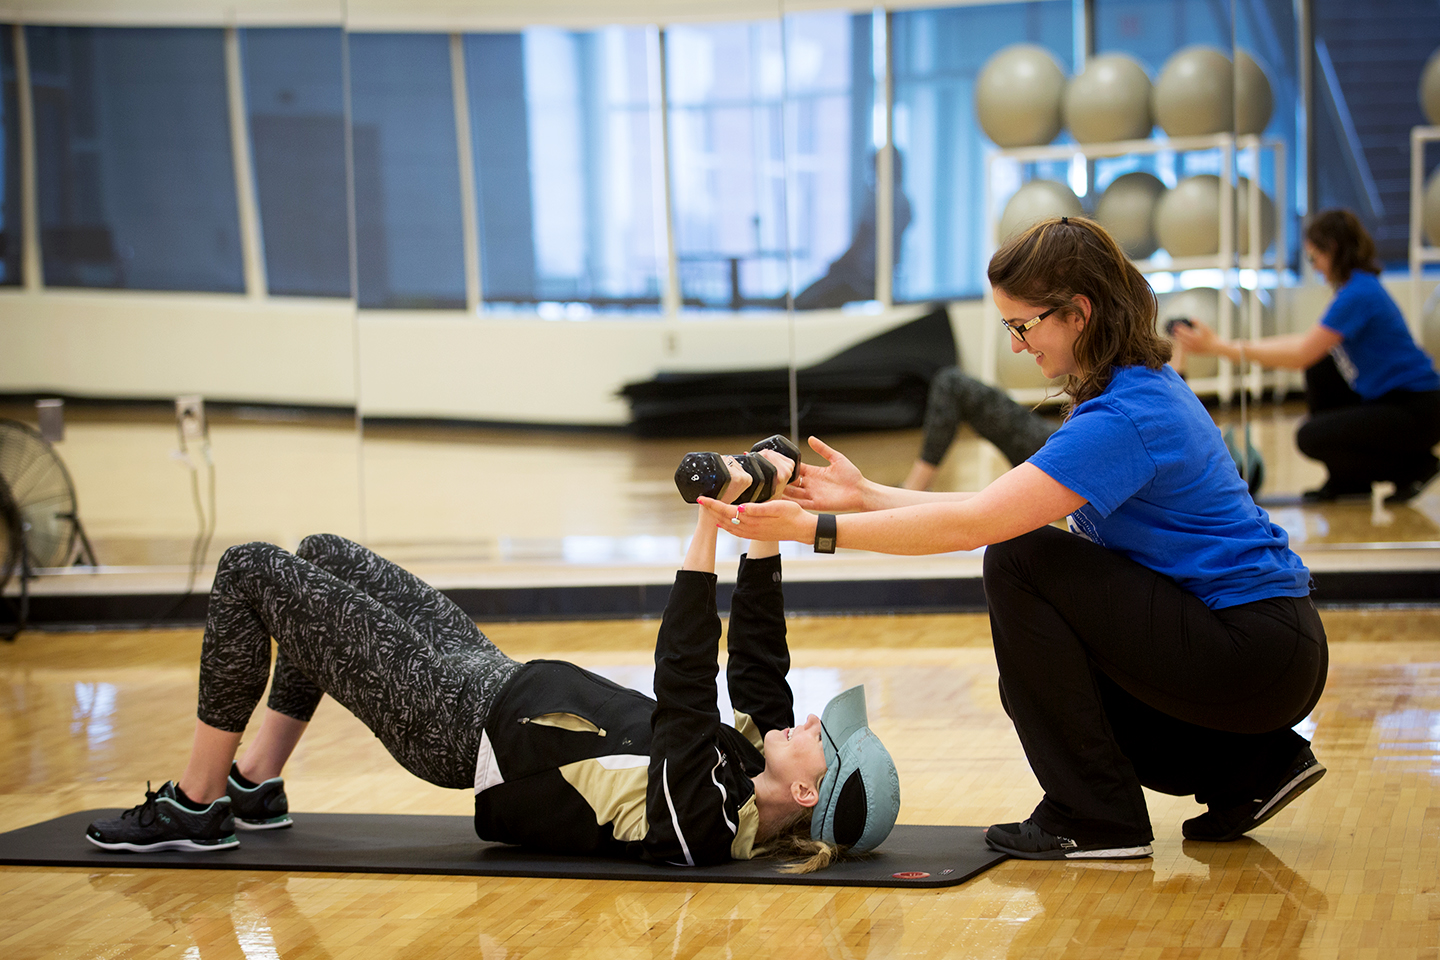 Earn Personal Trainer Certification through Oakland University PACE program